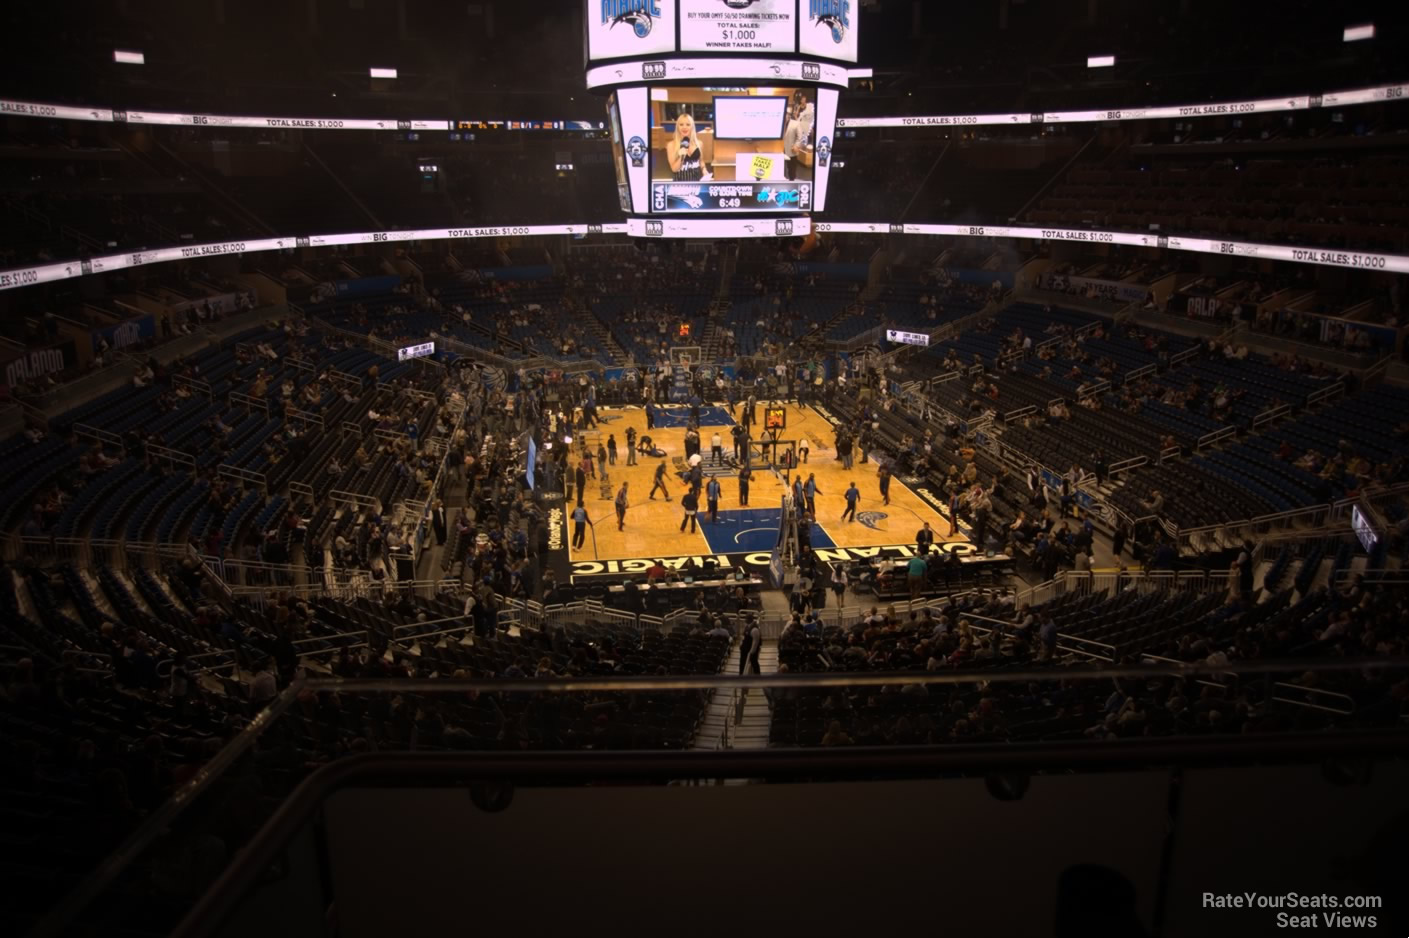 Seat View for Amway Center Section 101, Row 31